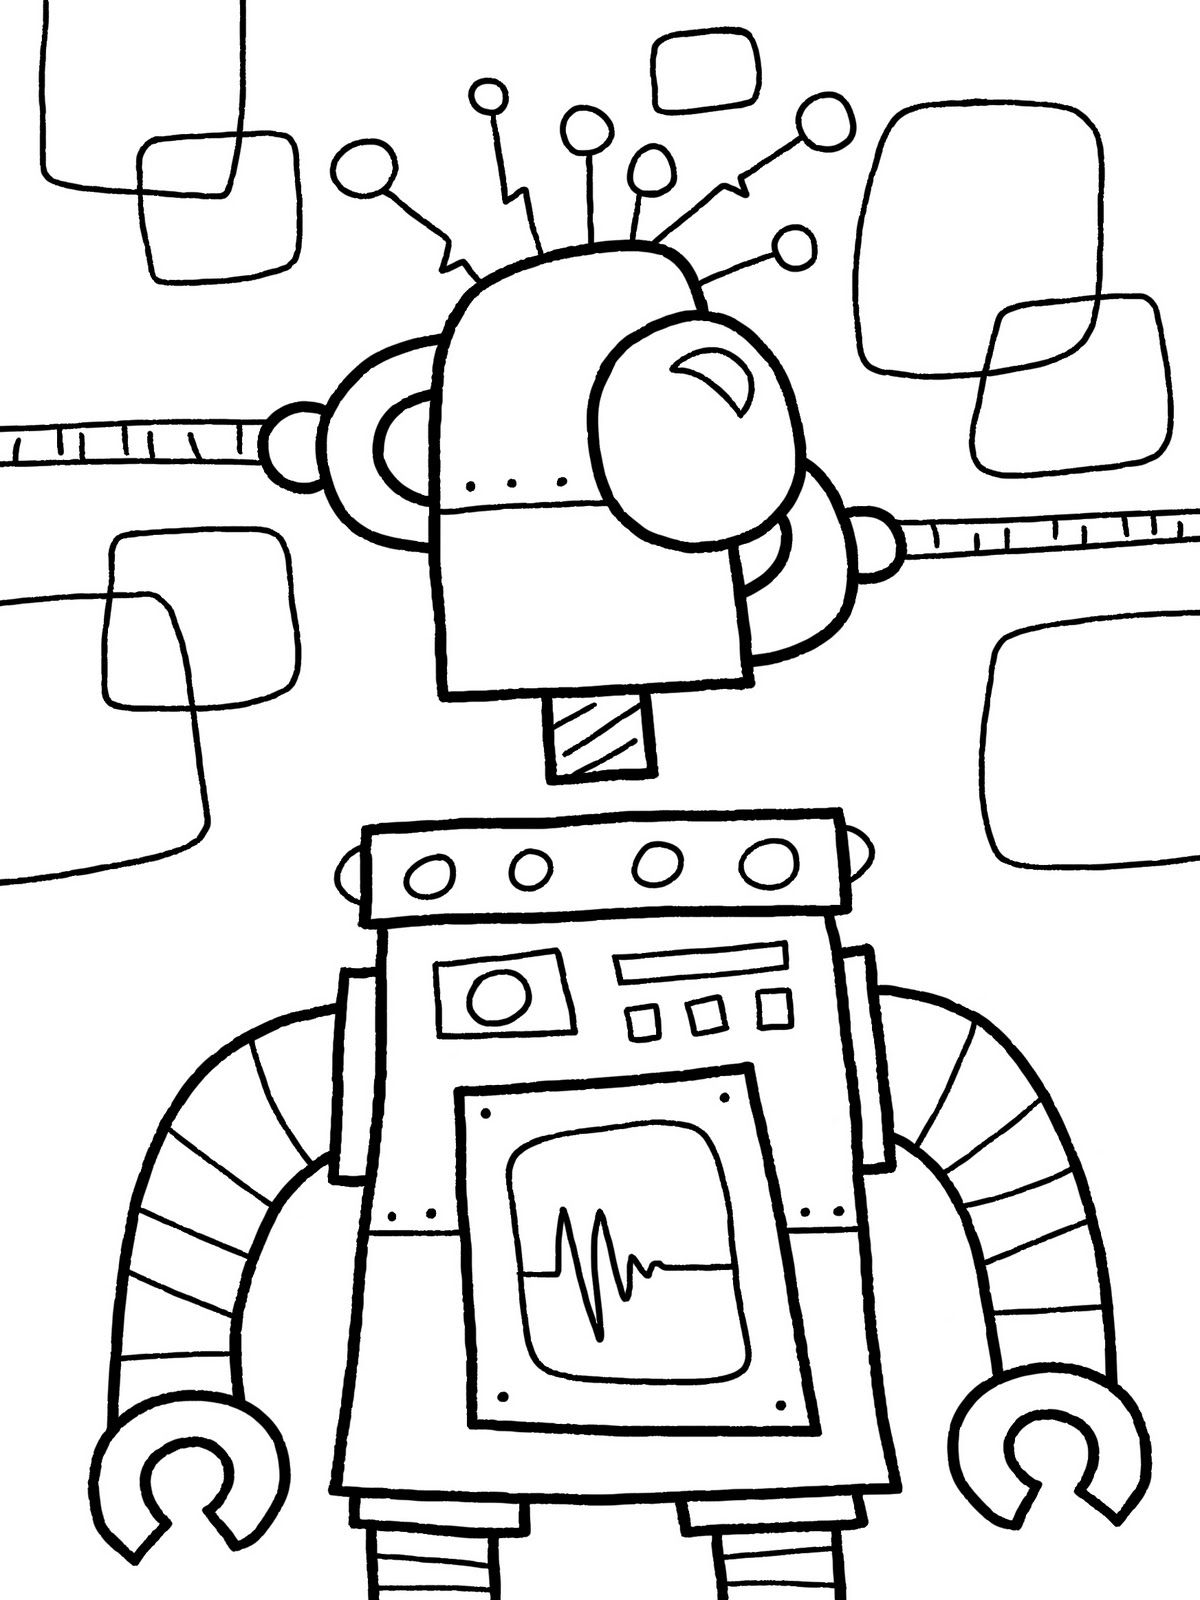 Robot Coloring Page 3484 | books and coloring | Pinterest | Robot